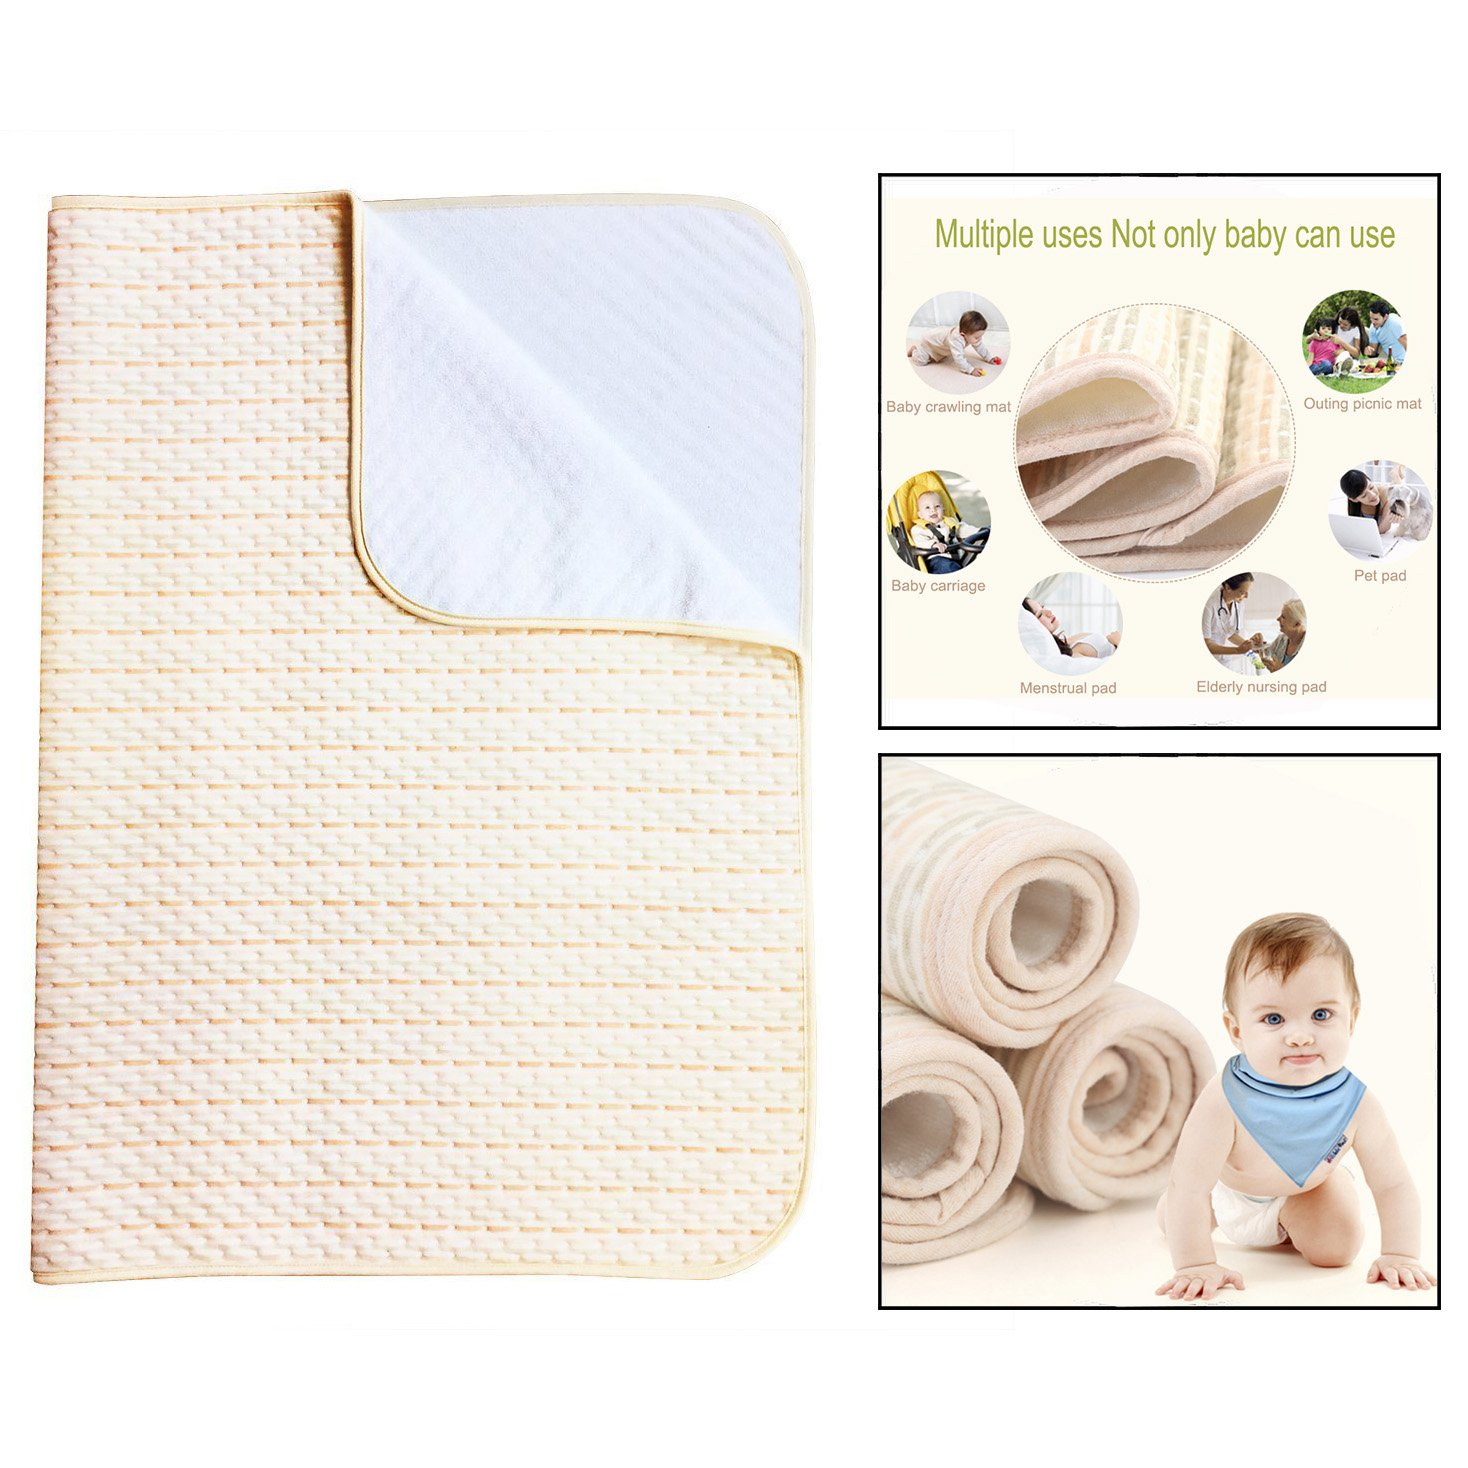 OFKPO Washable Waterproof Sheet Bed Pad, Mattress Protector for Baby Kids Adults